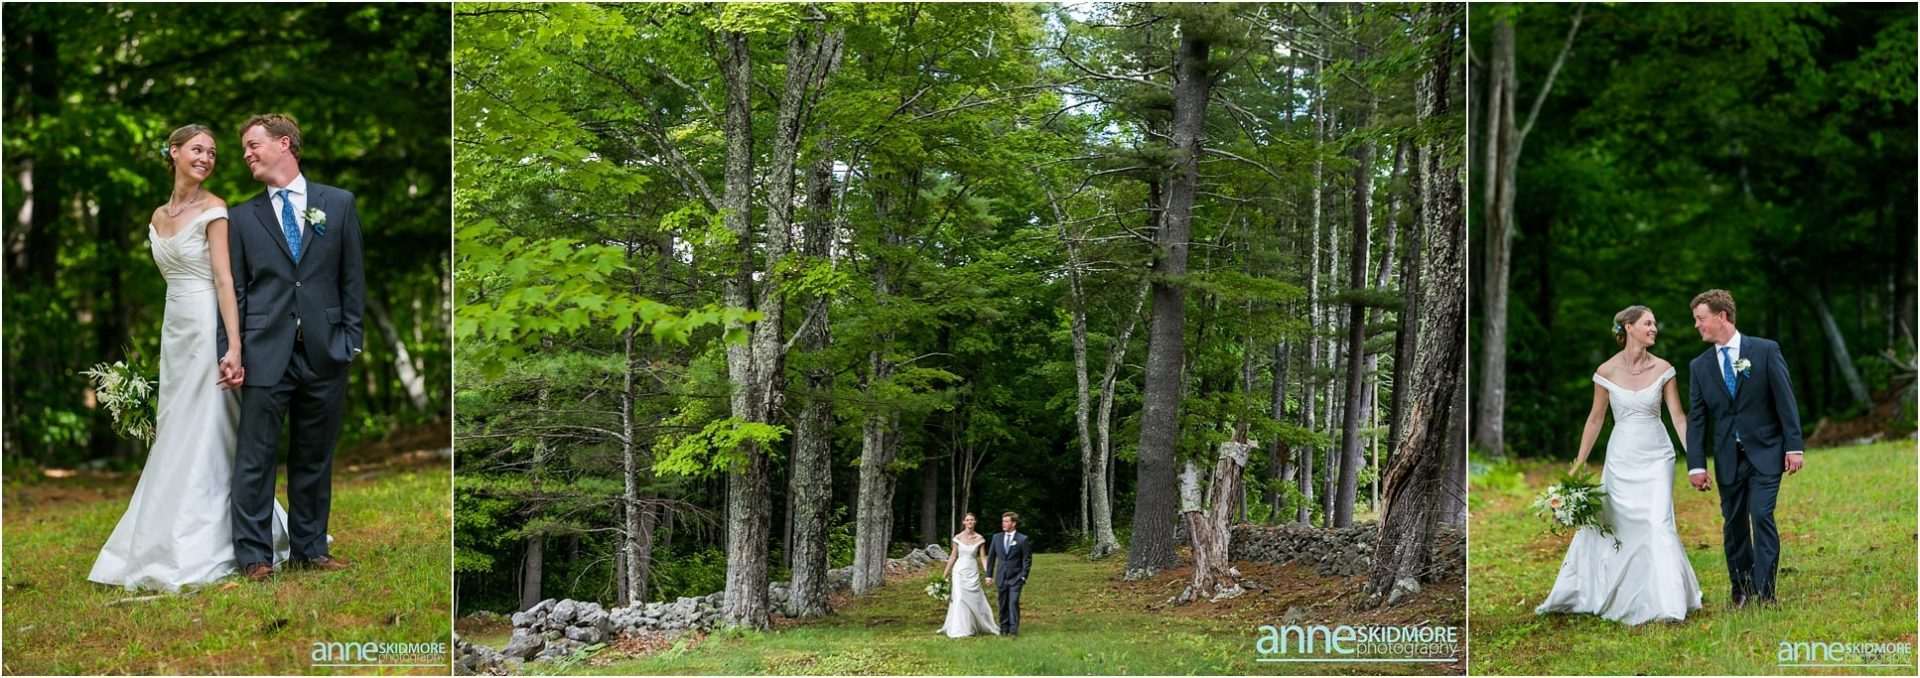 new_hampshire_wedding_photography_0029